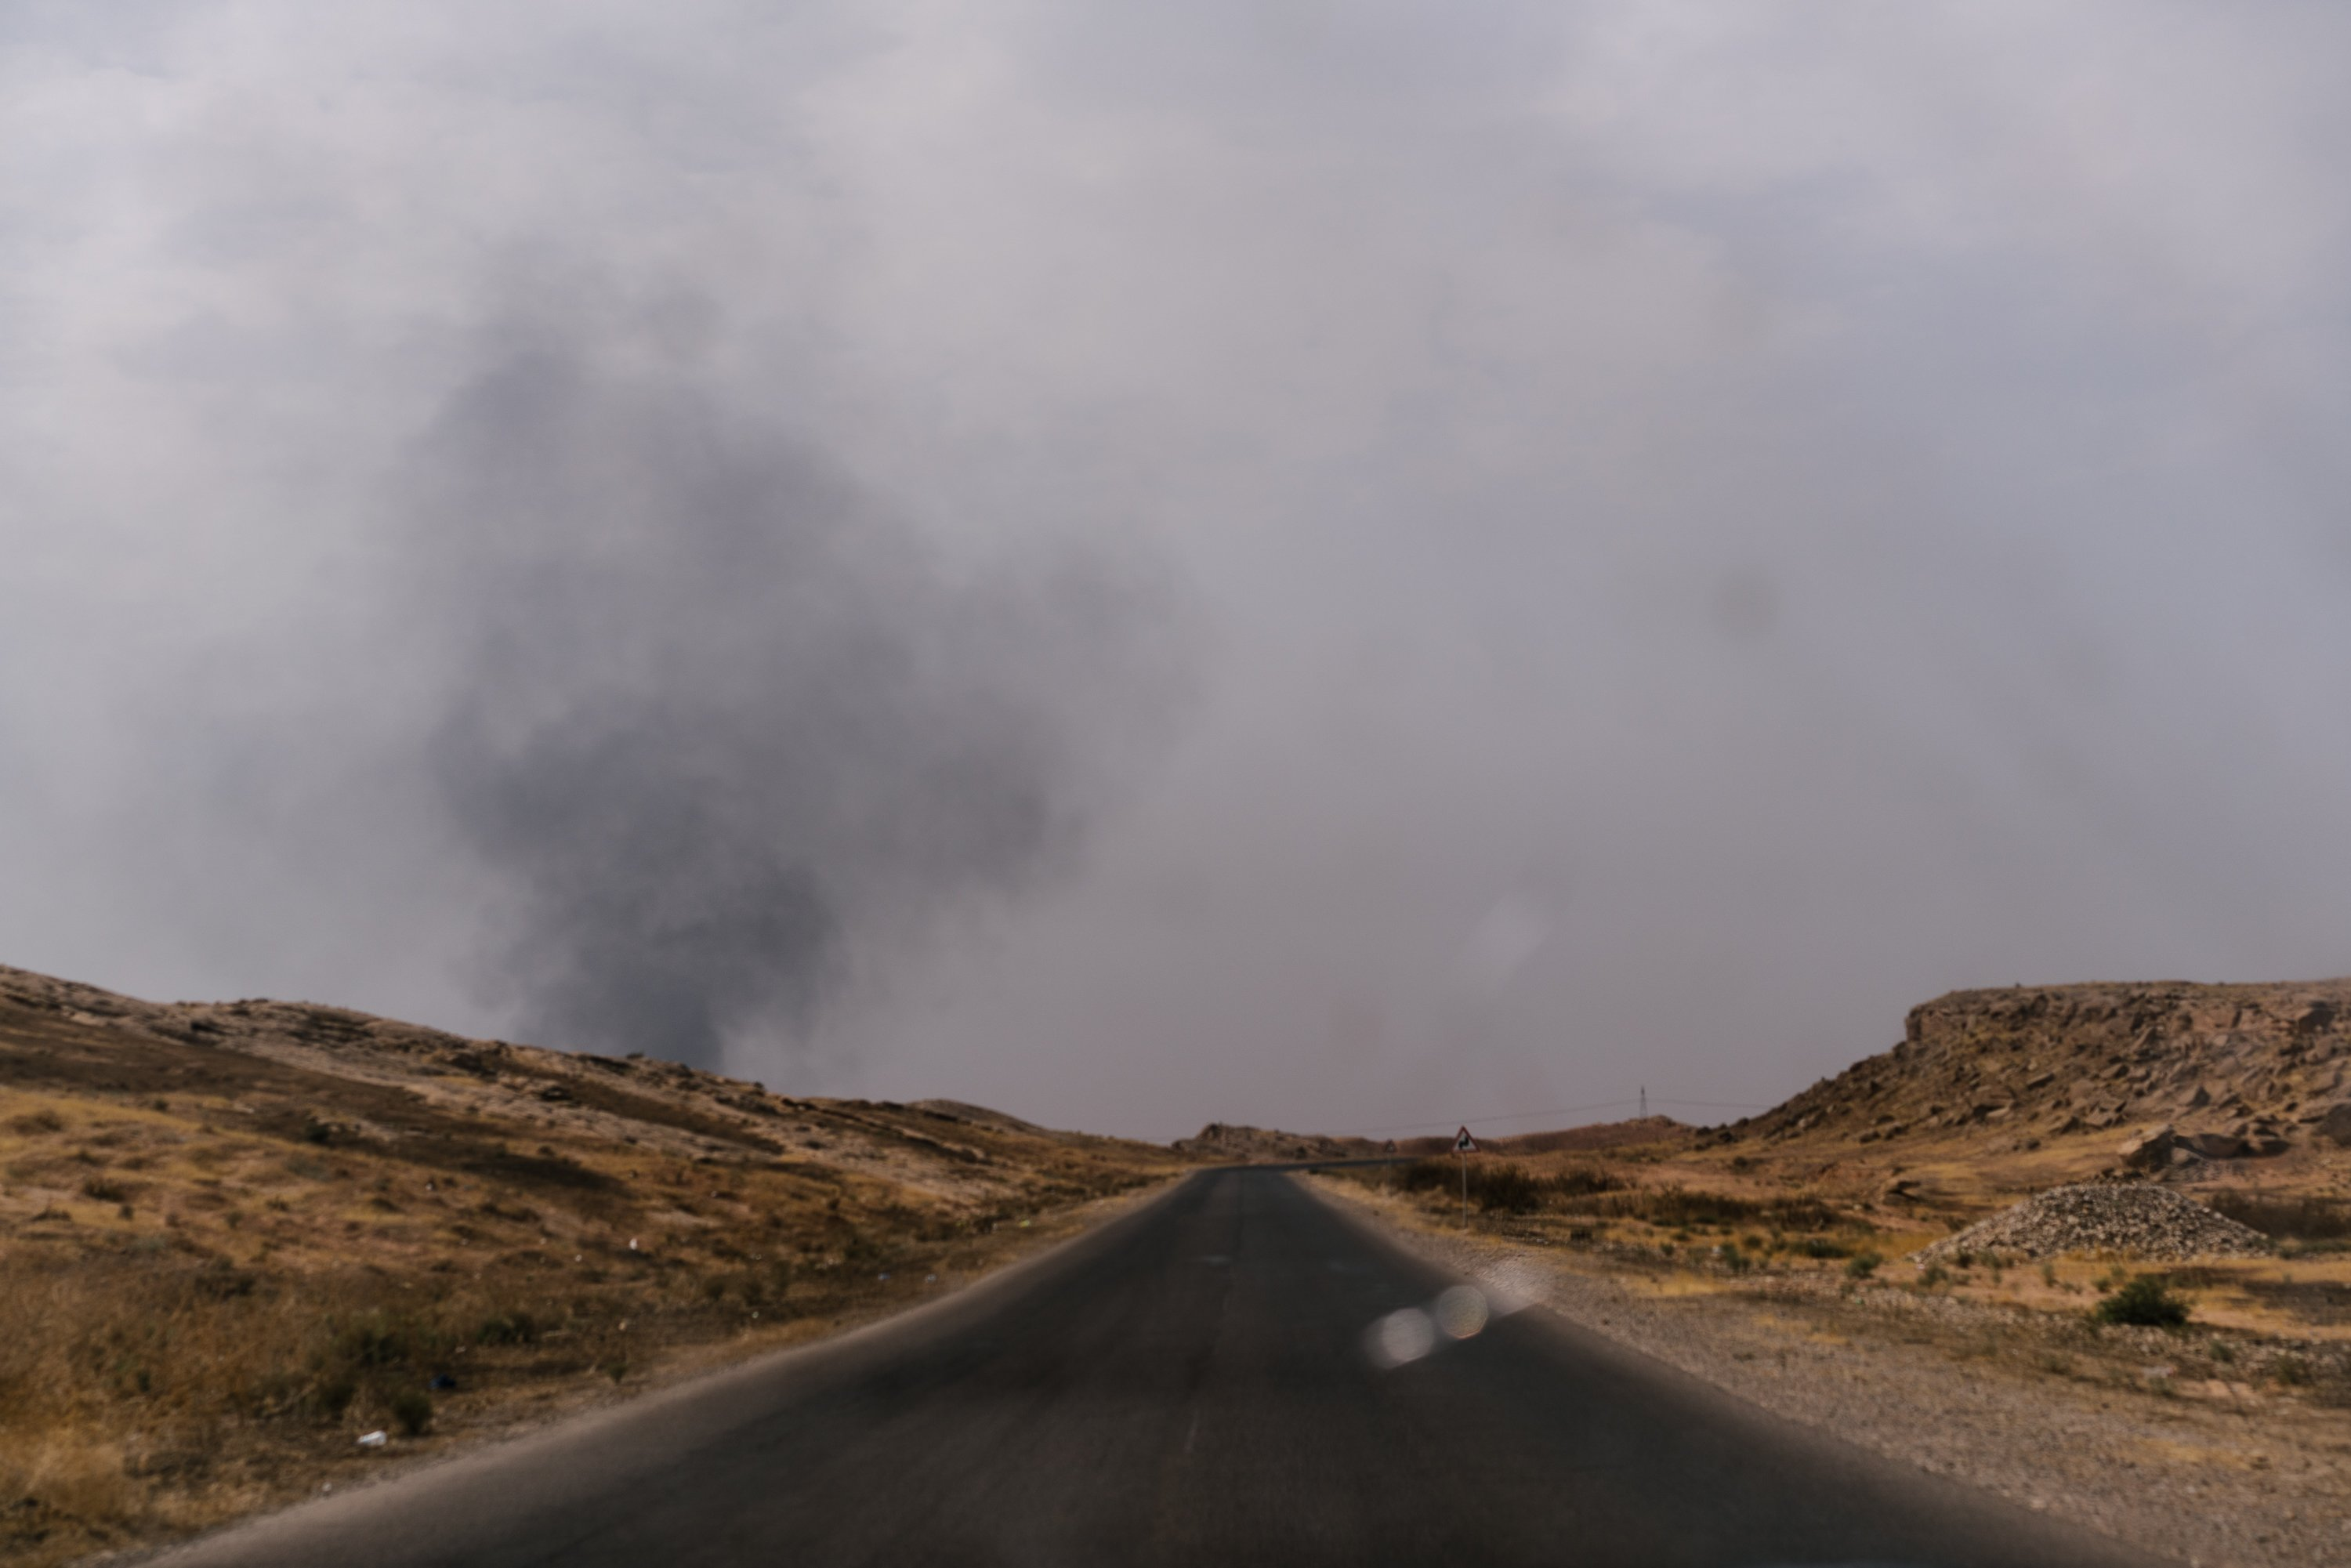 A cloud of smoke over an empty road